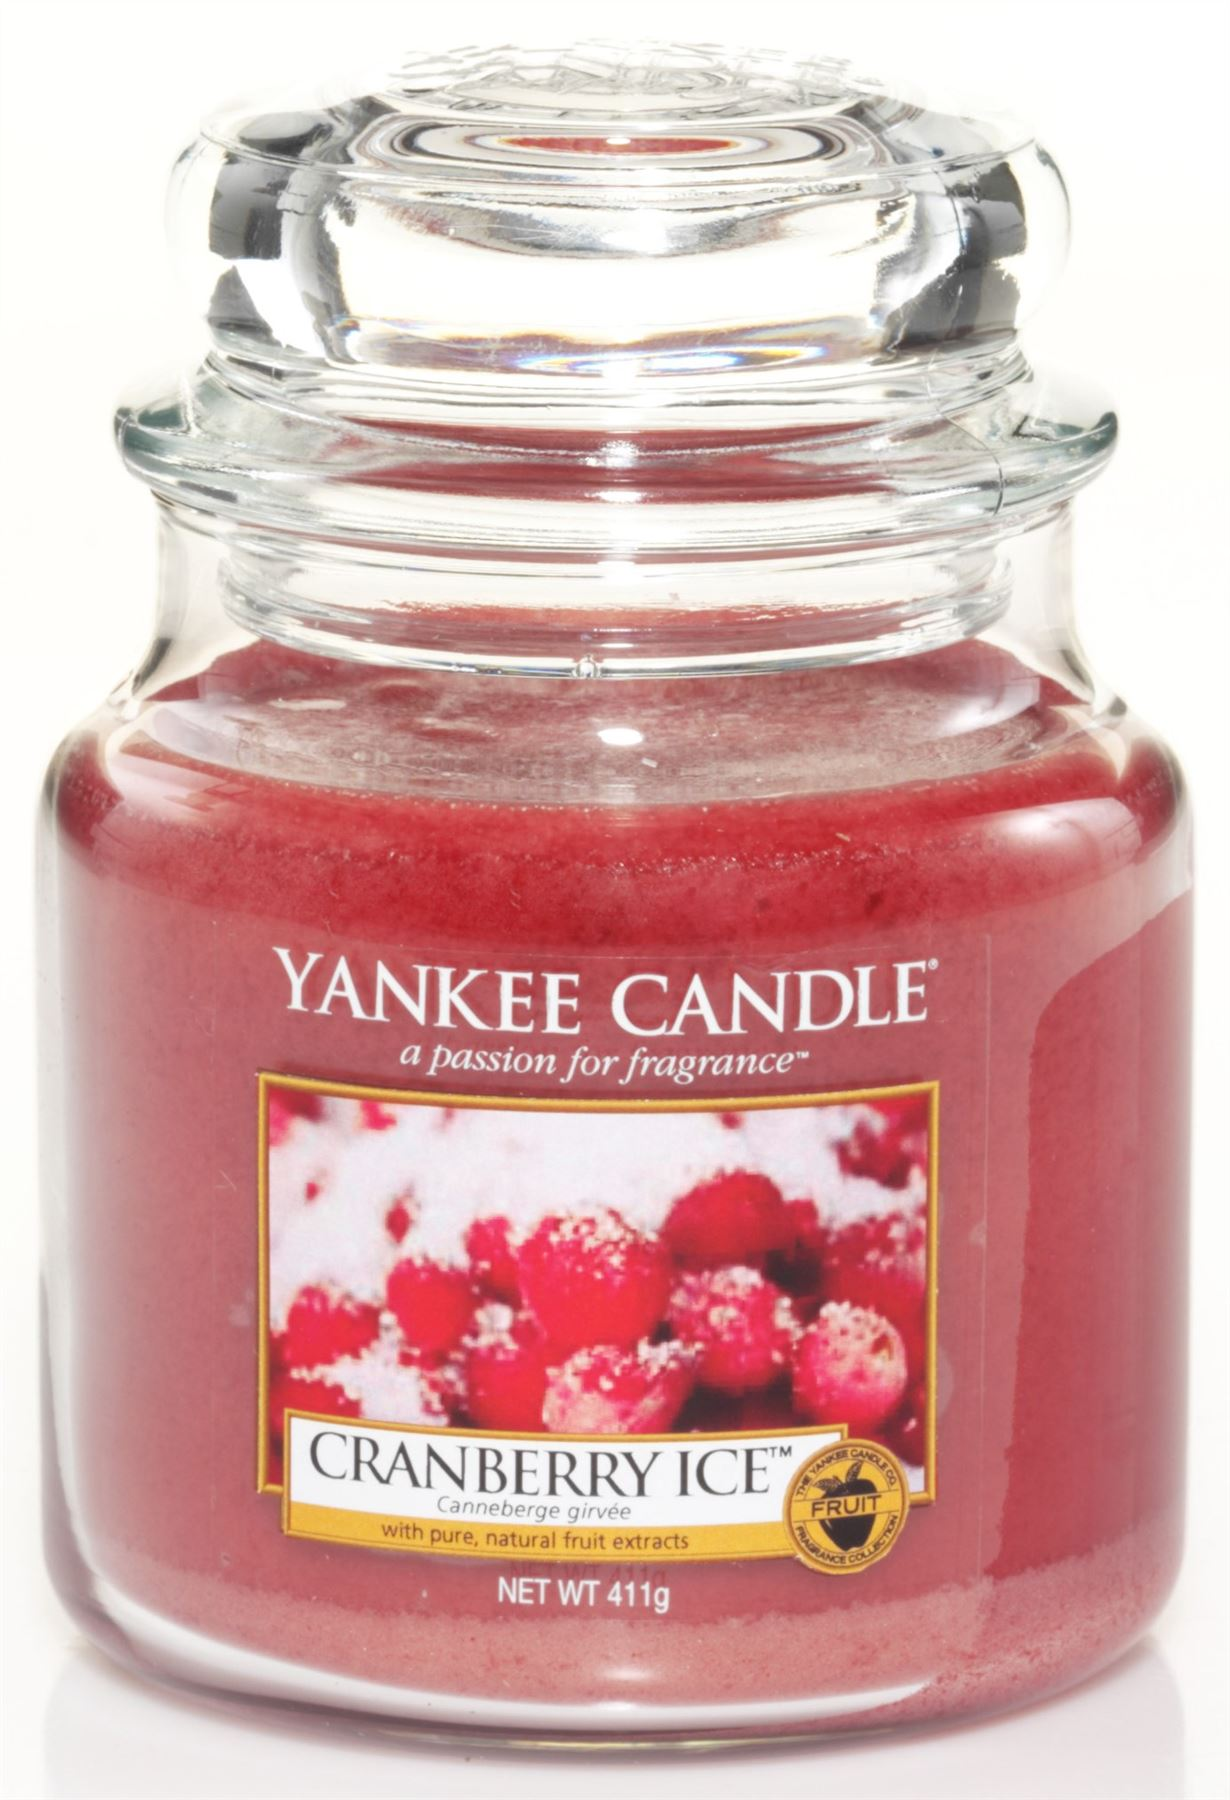 Yankee candle gift sets make the perfect gift for your loved ones, for almost any ocassion, or if you're in the mood why not treat yourself! To allow you to shop in the best possible way, we have added fragrance type in case you wanted to try something new from the comfort of your home.